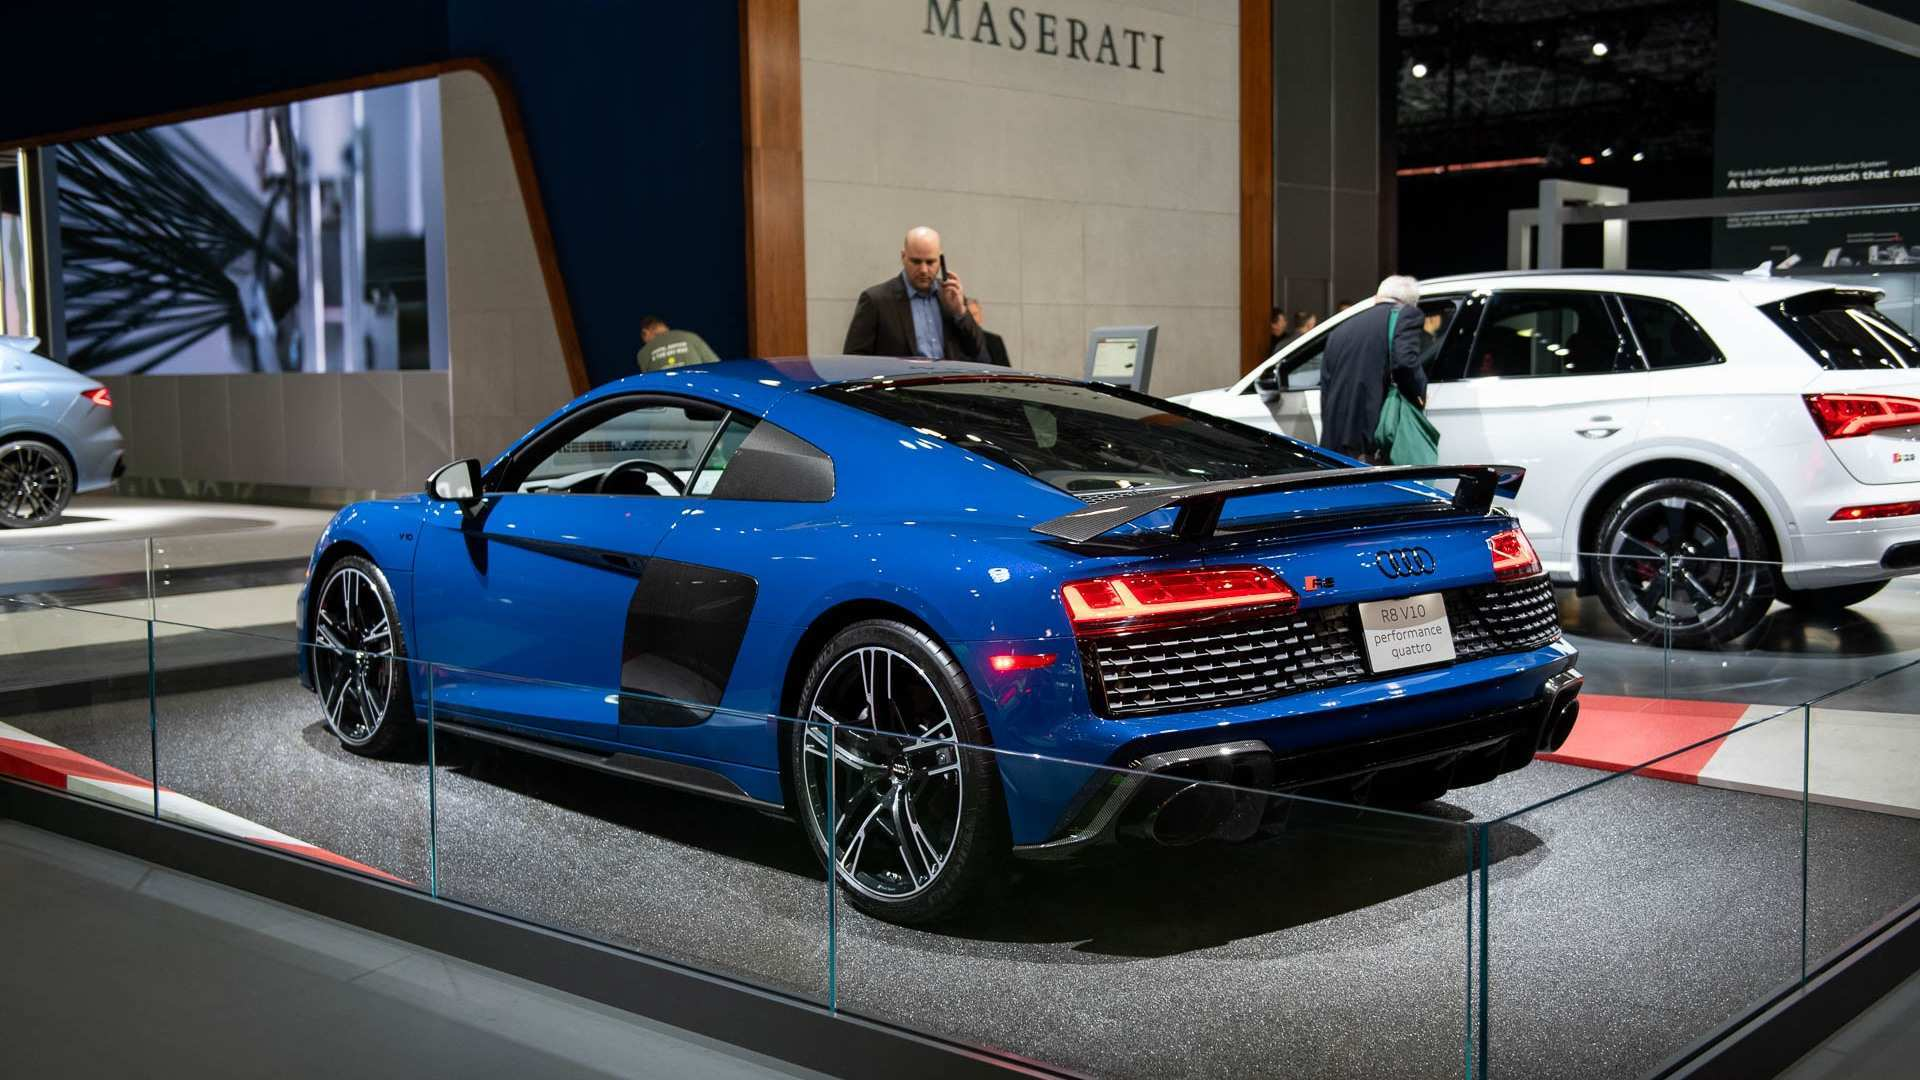 92 New Audi R8 2020 Picture with Audi R8 2020